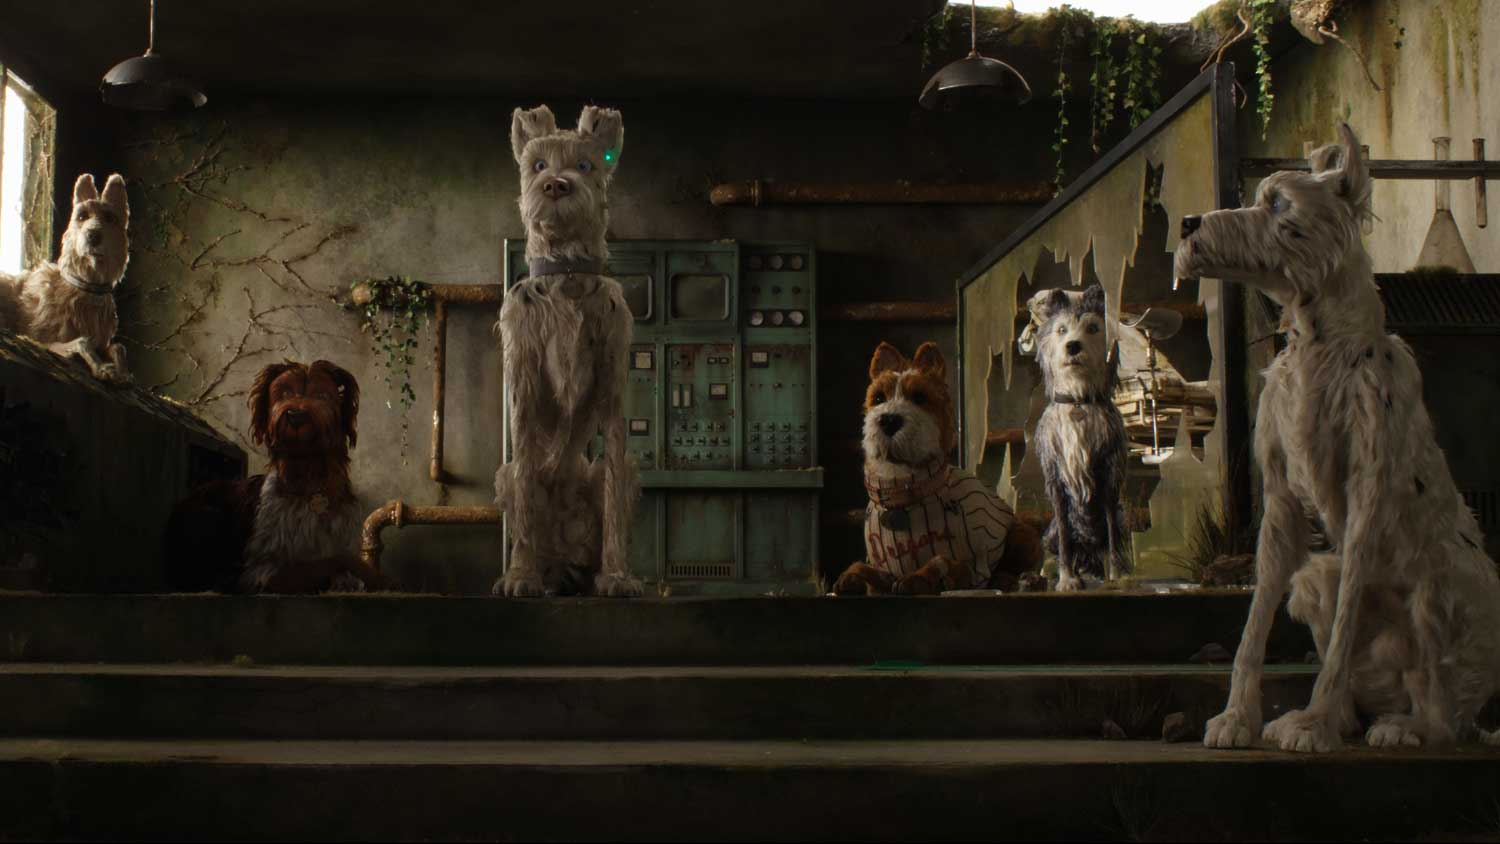 Isle Of Dogs Review - OC Movie Reviews - Movie Reviews, Movie News, Documentary Reviews, Short Films, Short Film Reviews, Trailers, Movie Trailers, Interviews, film reviews, film news, hollywood, indie films, documentaries